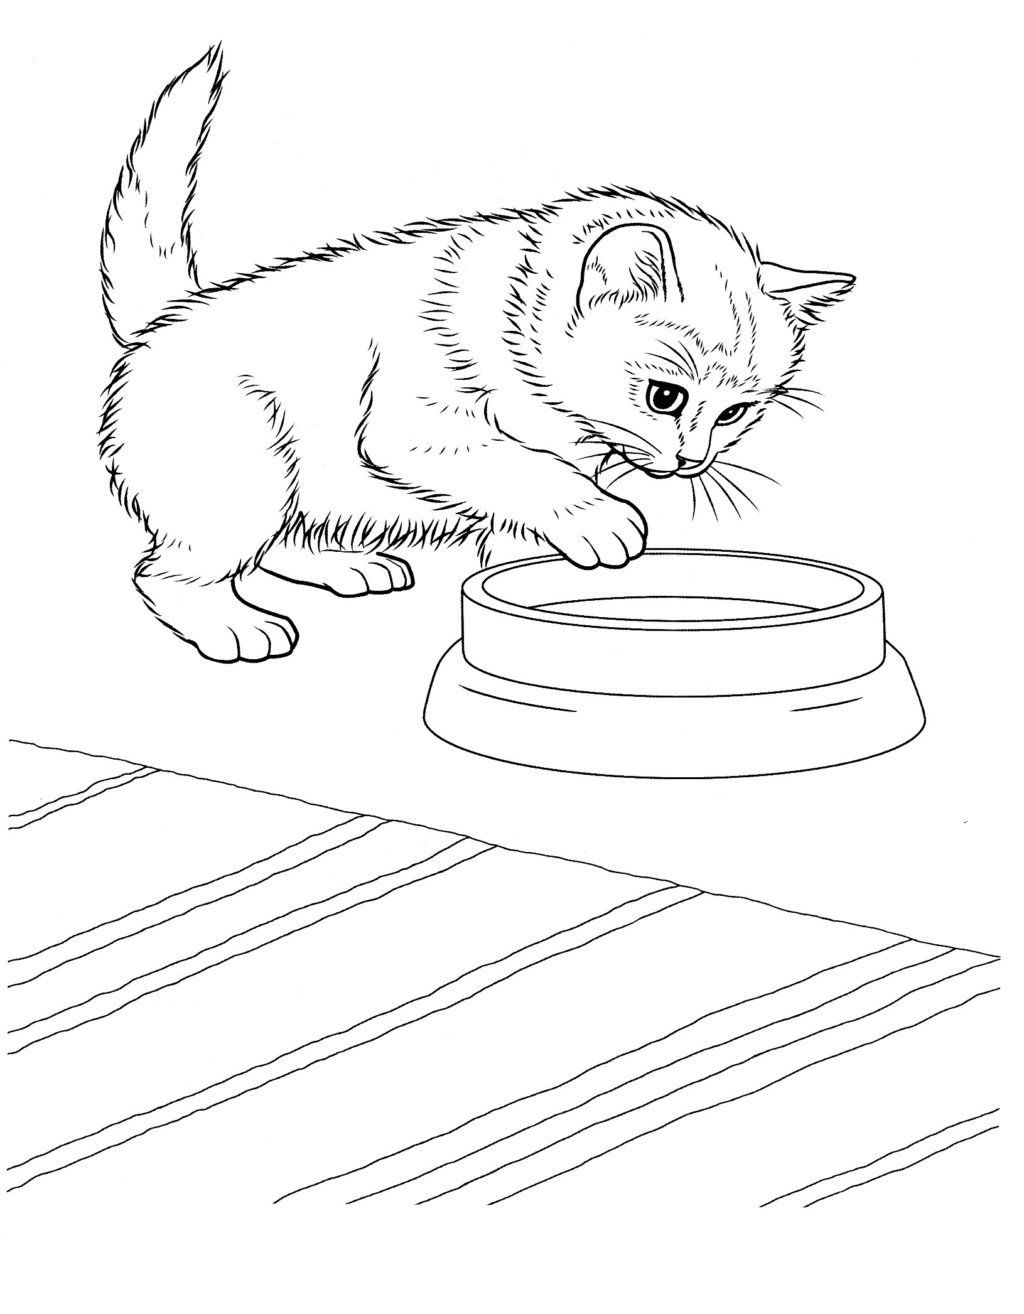 Pete the Cat Coloring Page Puppy and Kitten Coloring Pages